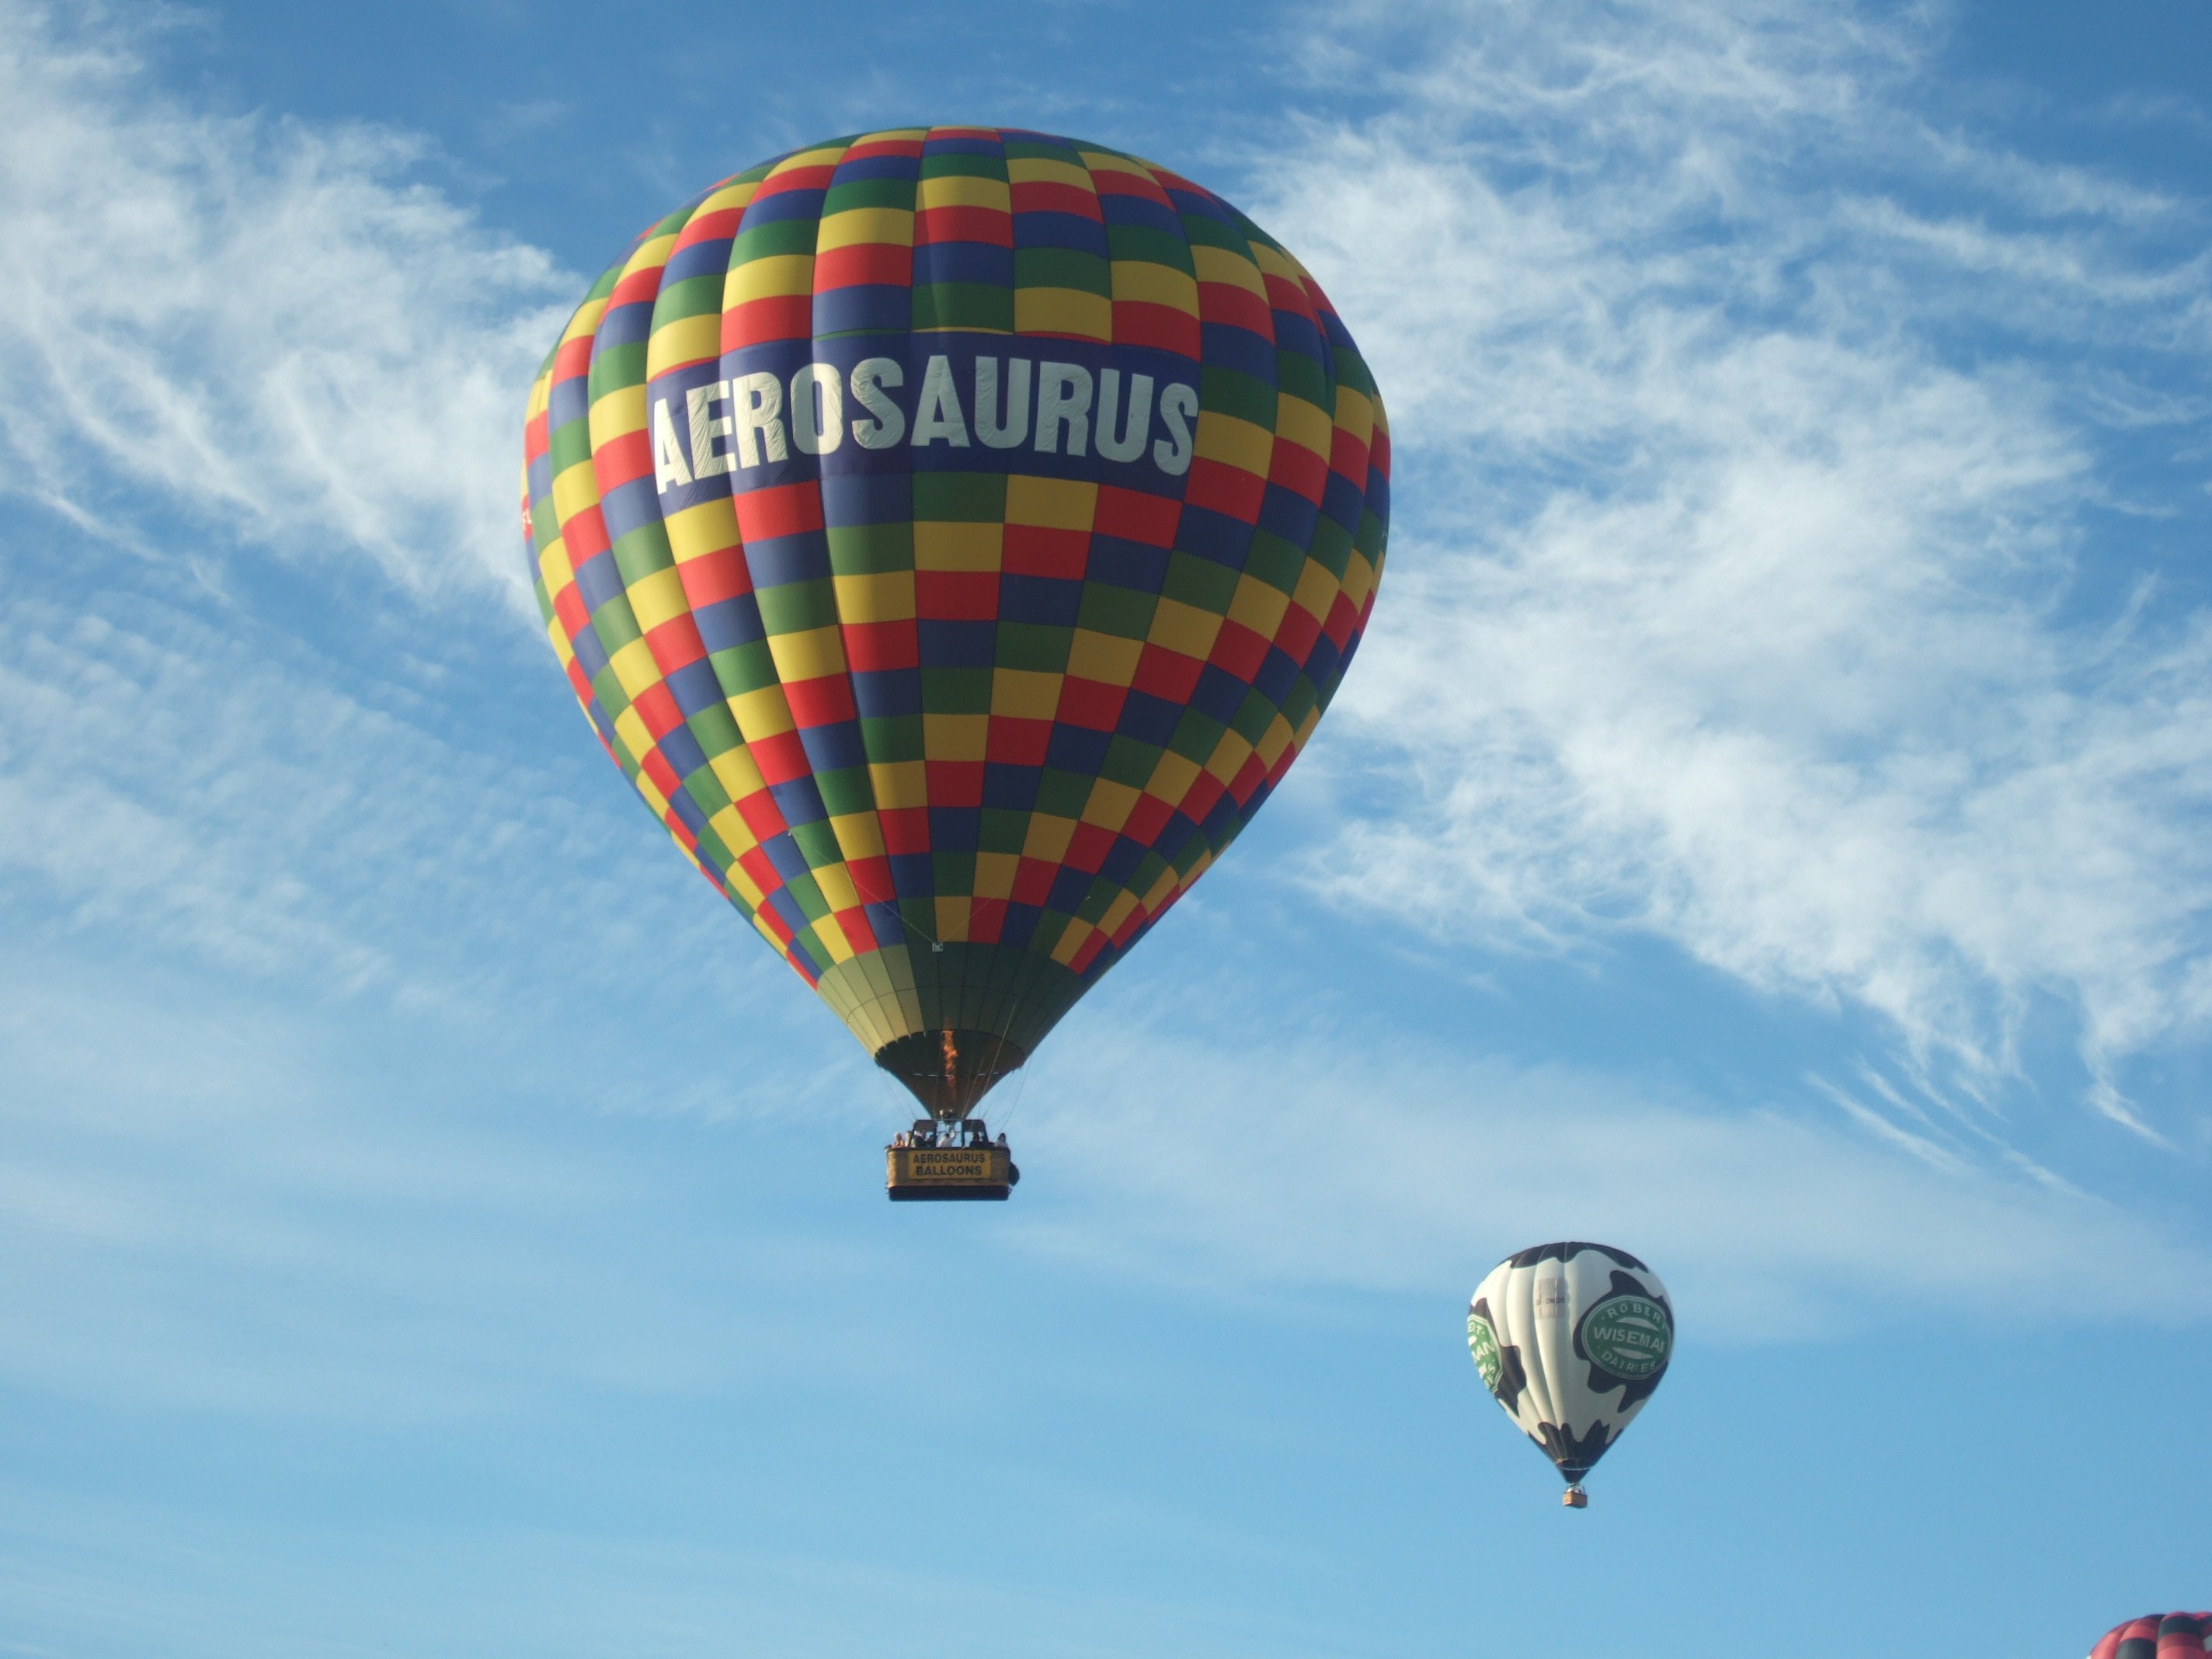 aerosaurus balloon in action